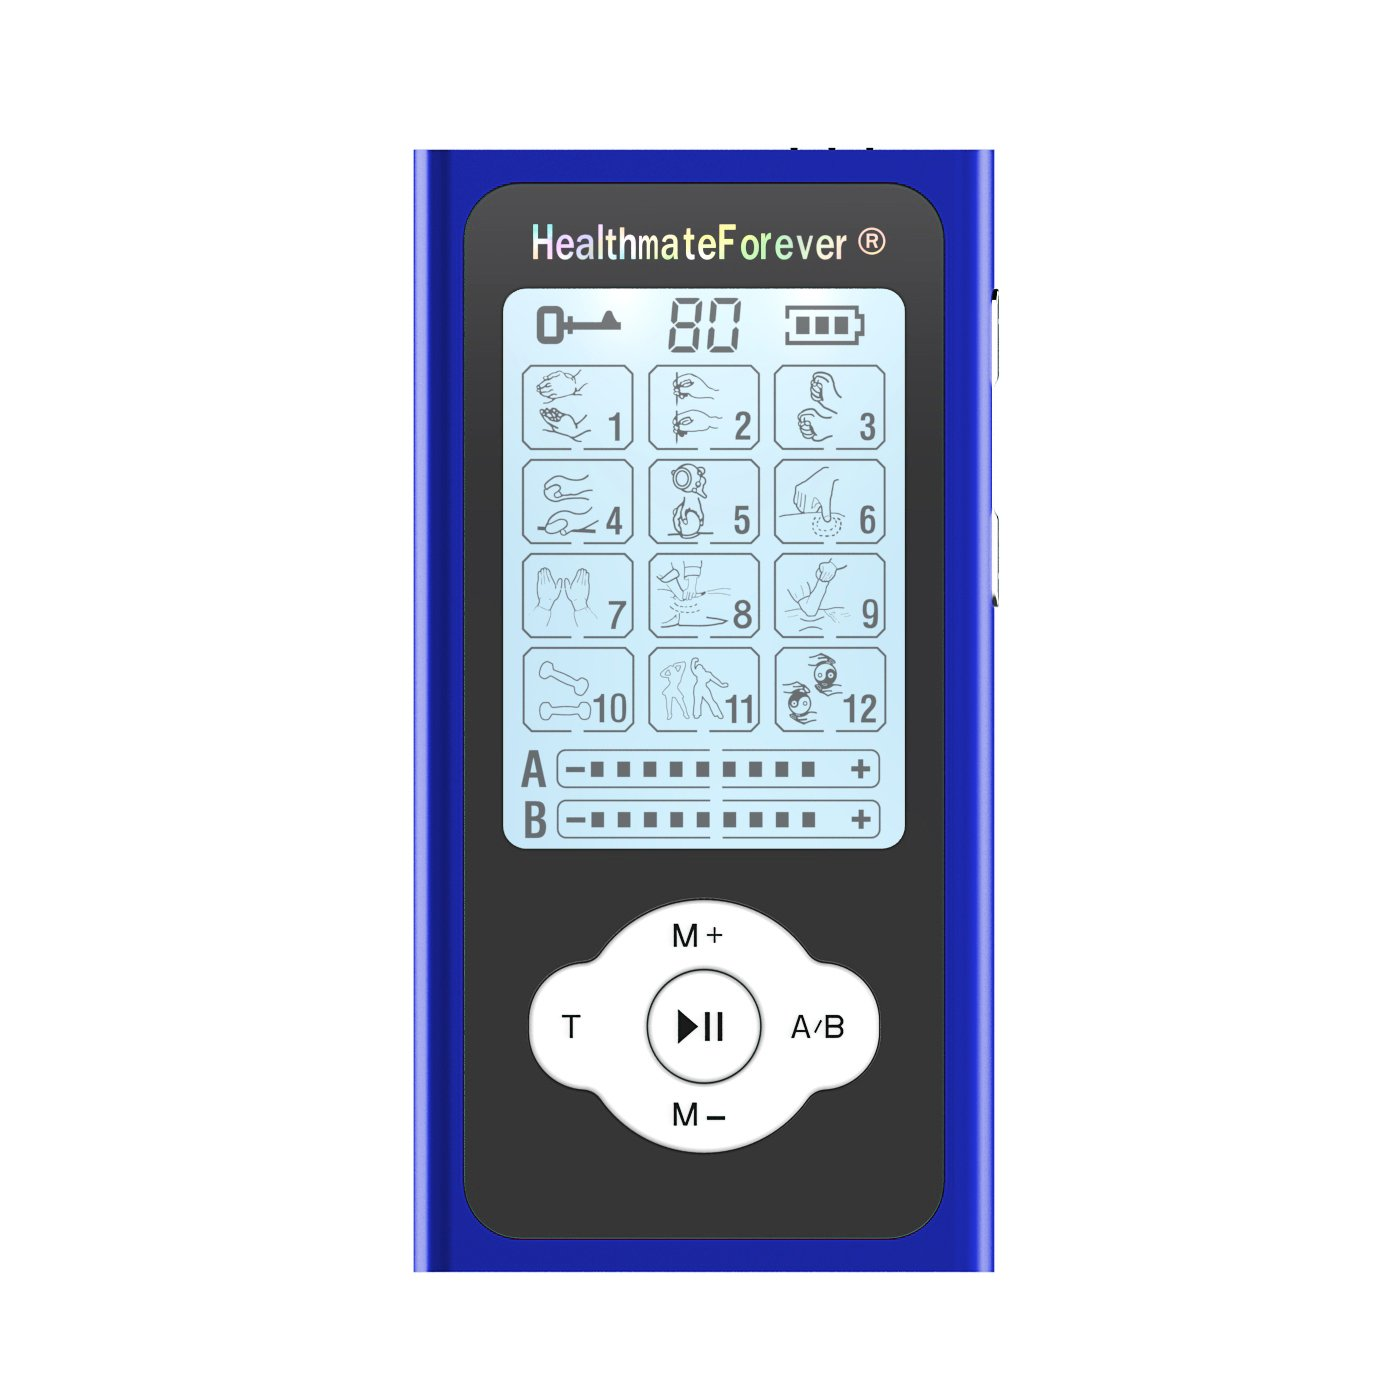 PRO12ABQ HealthmateForever TENS Unit Electrical Muscle Stimulator Blue + 5 Pairs of Pads